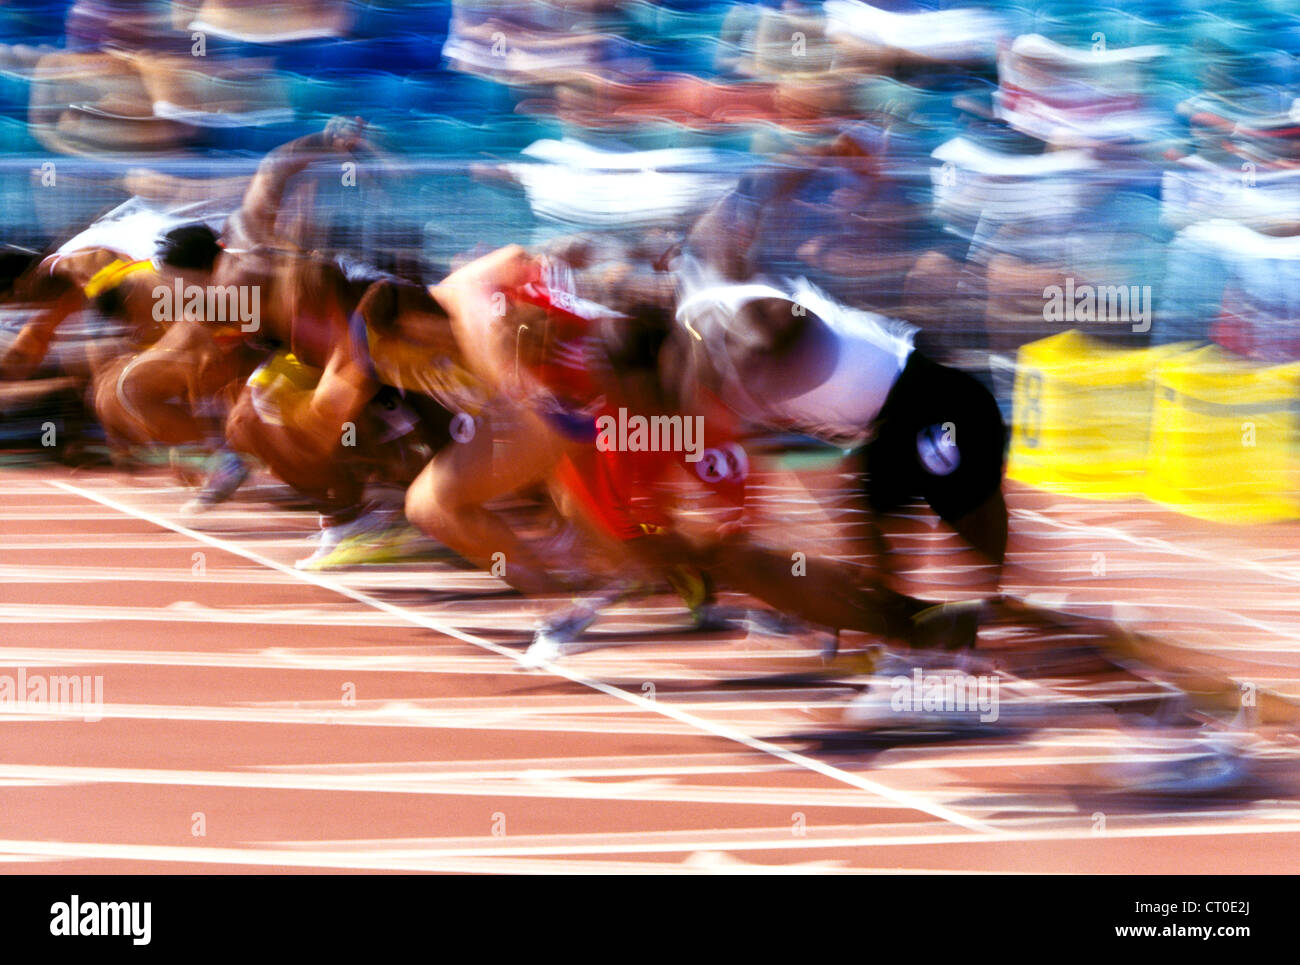 Start of track and field 100 meters sprint start. - Stock Image